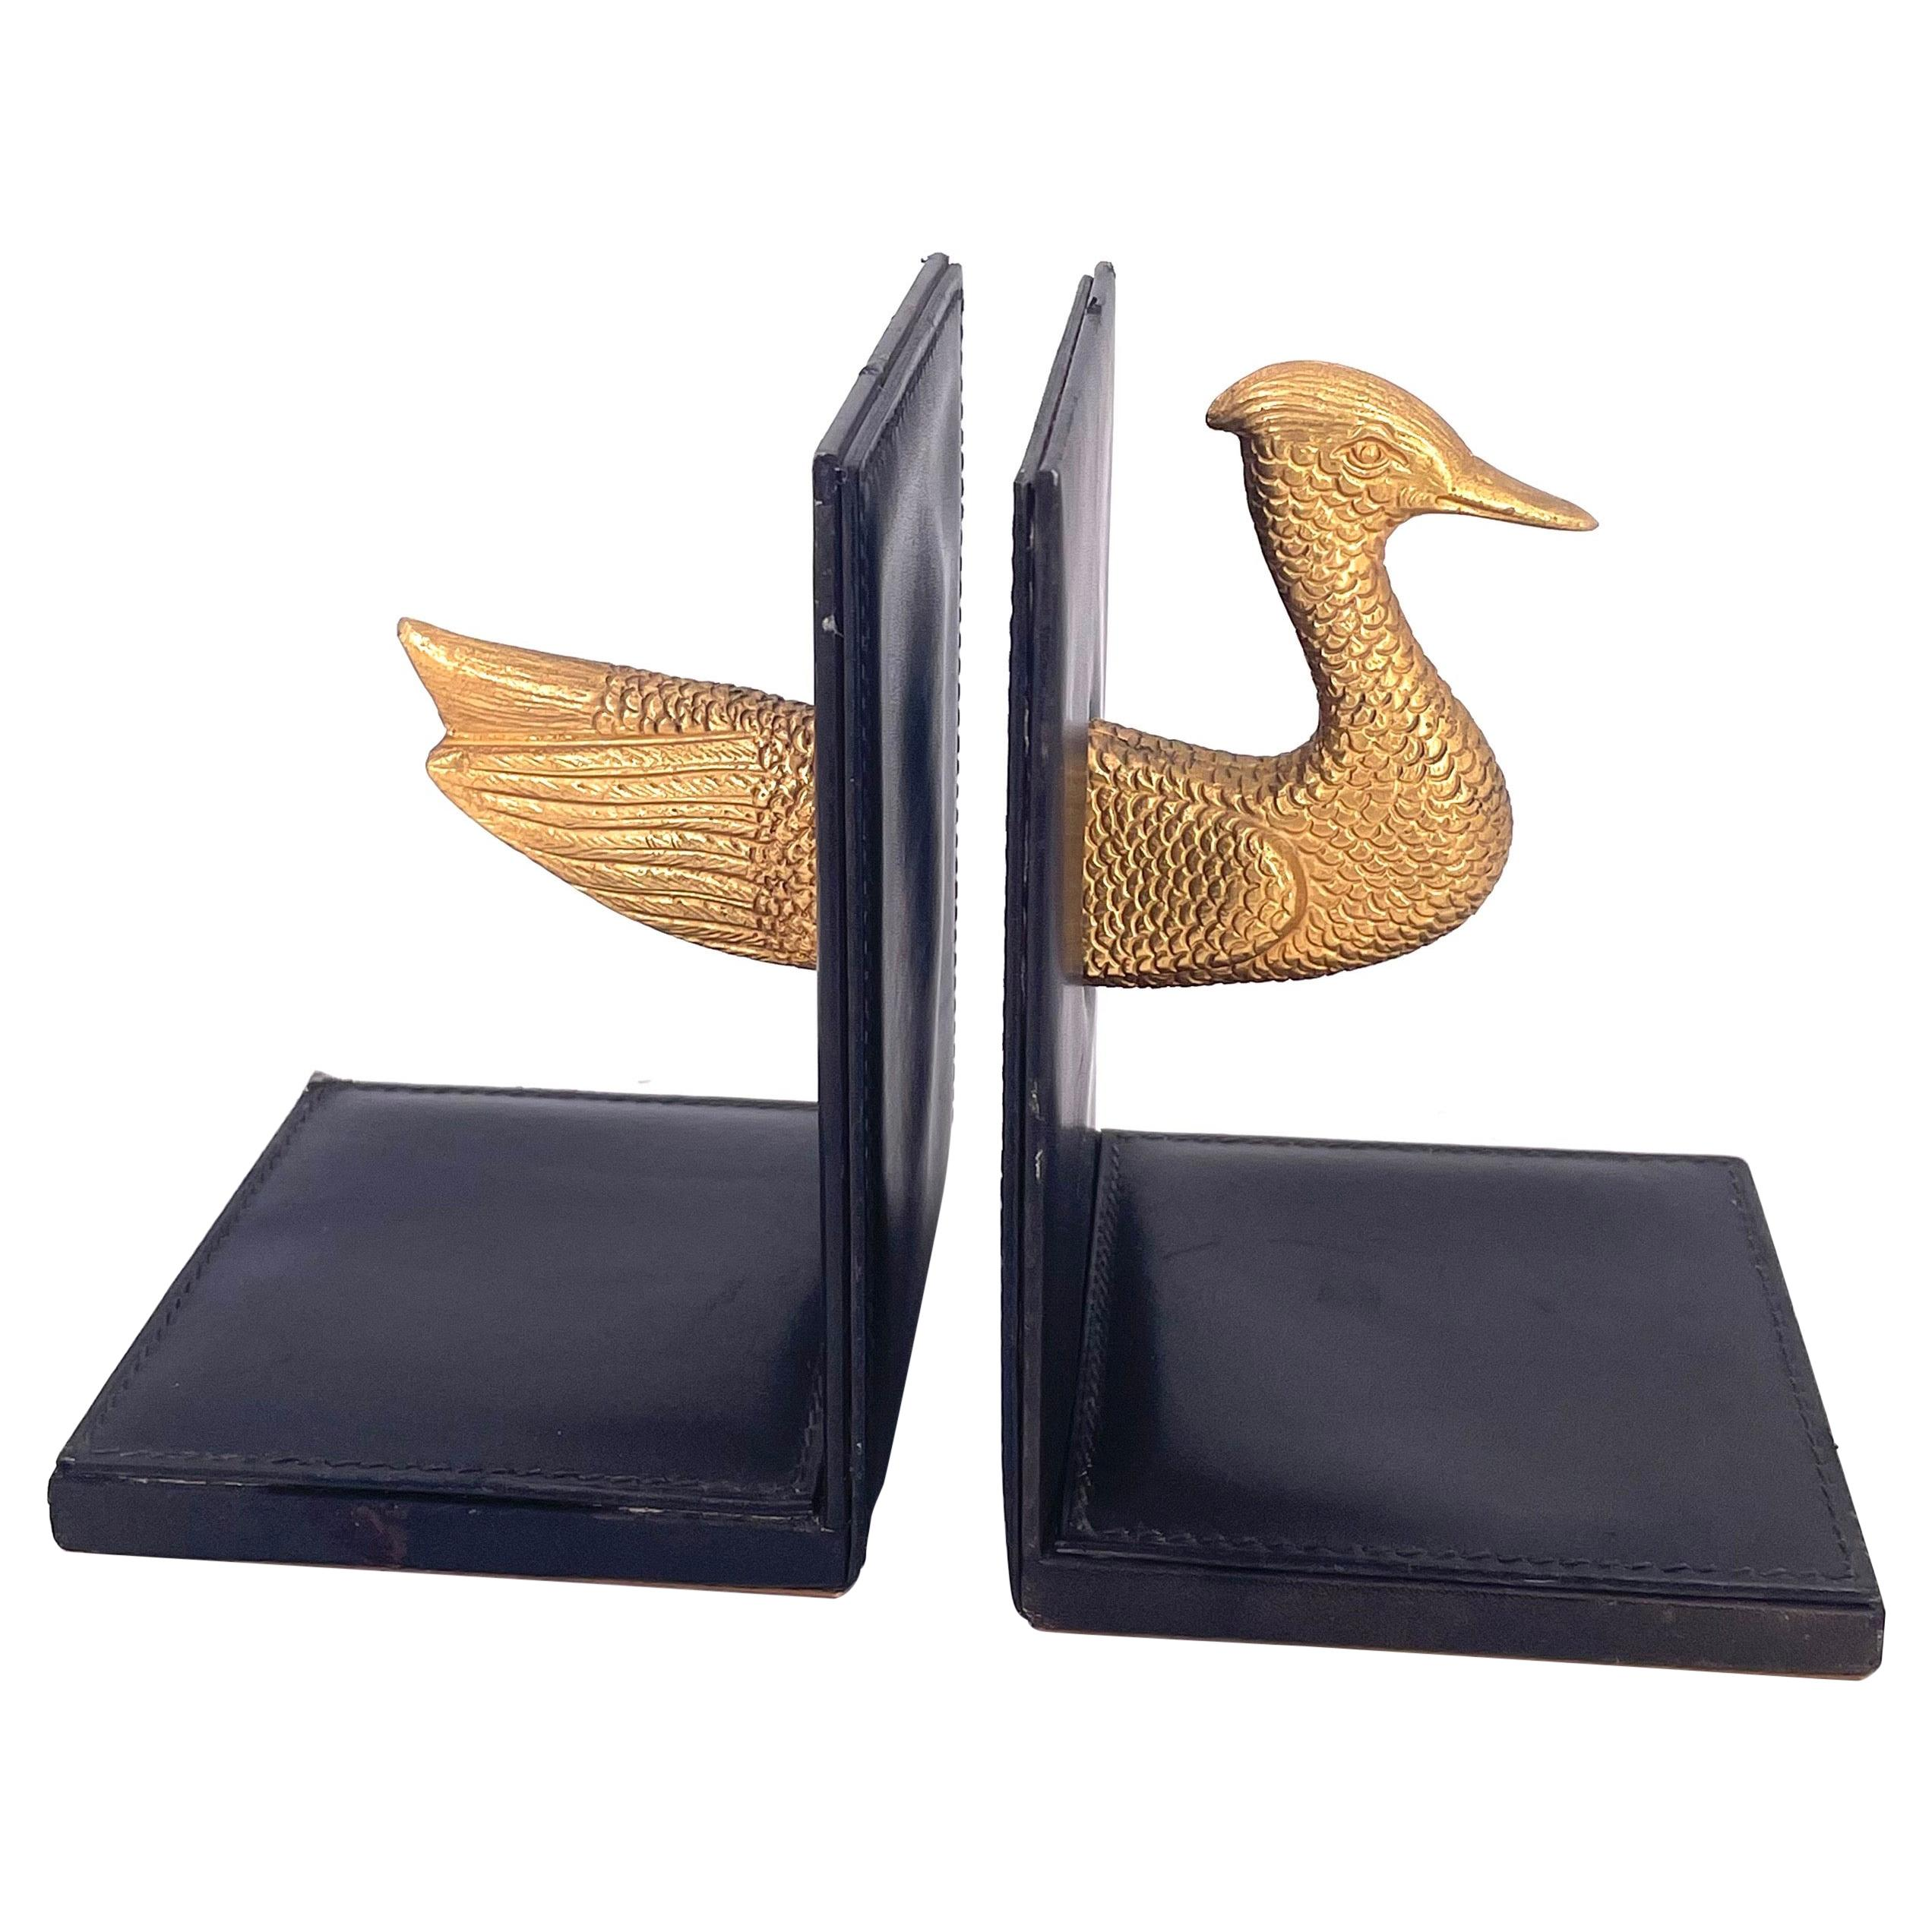 Hollywood Regency Gold Guild Bronze & Leather Italian Bookends